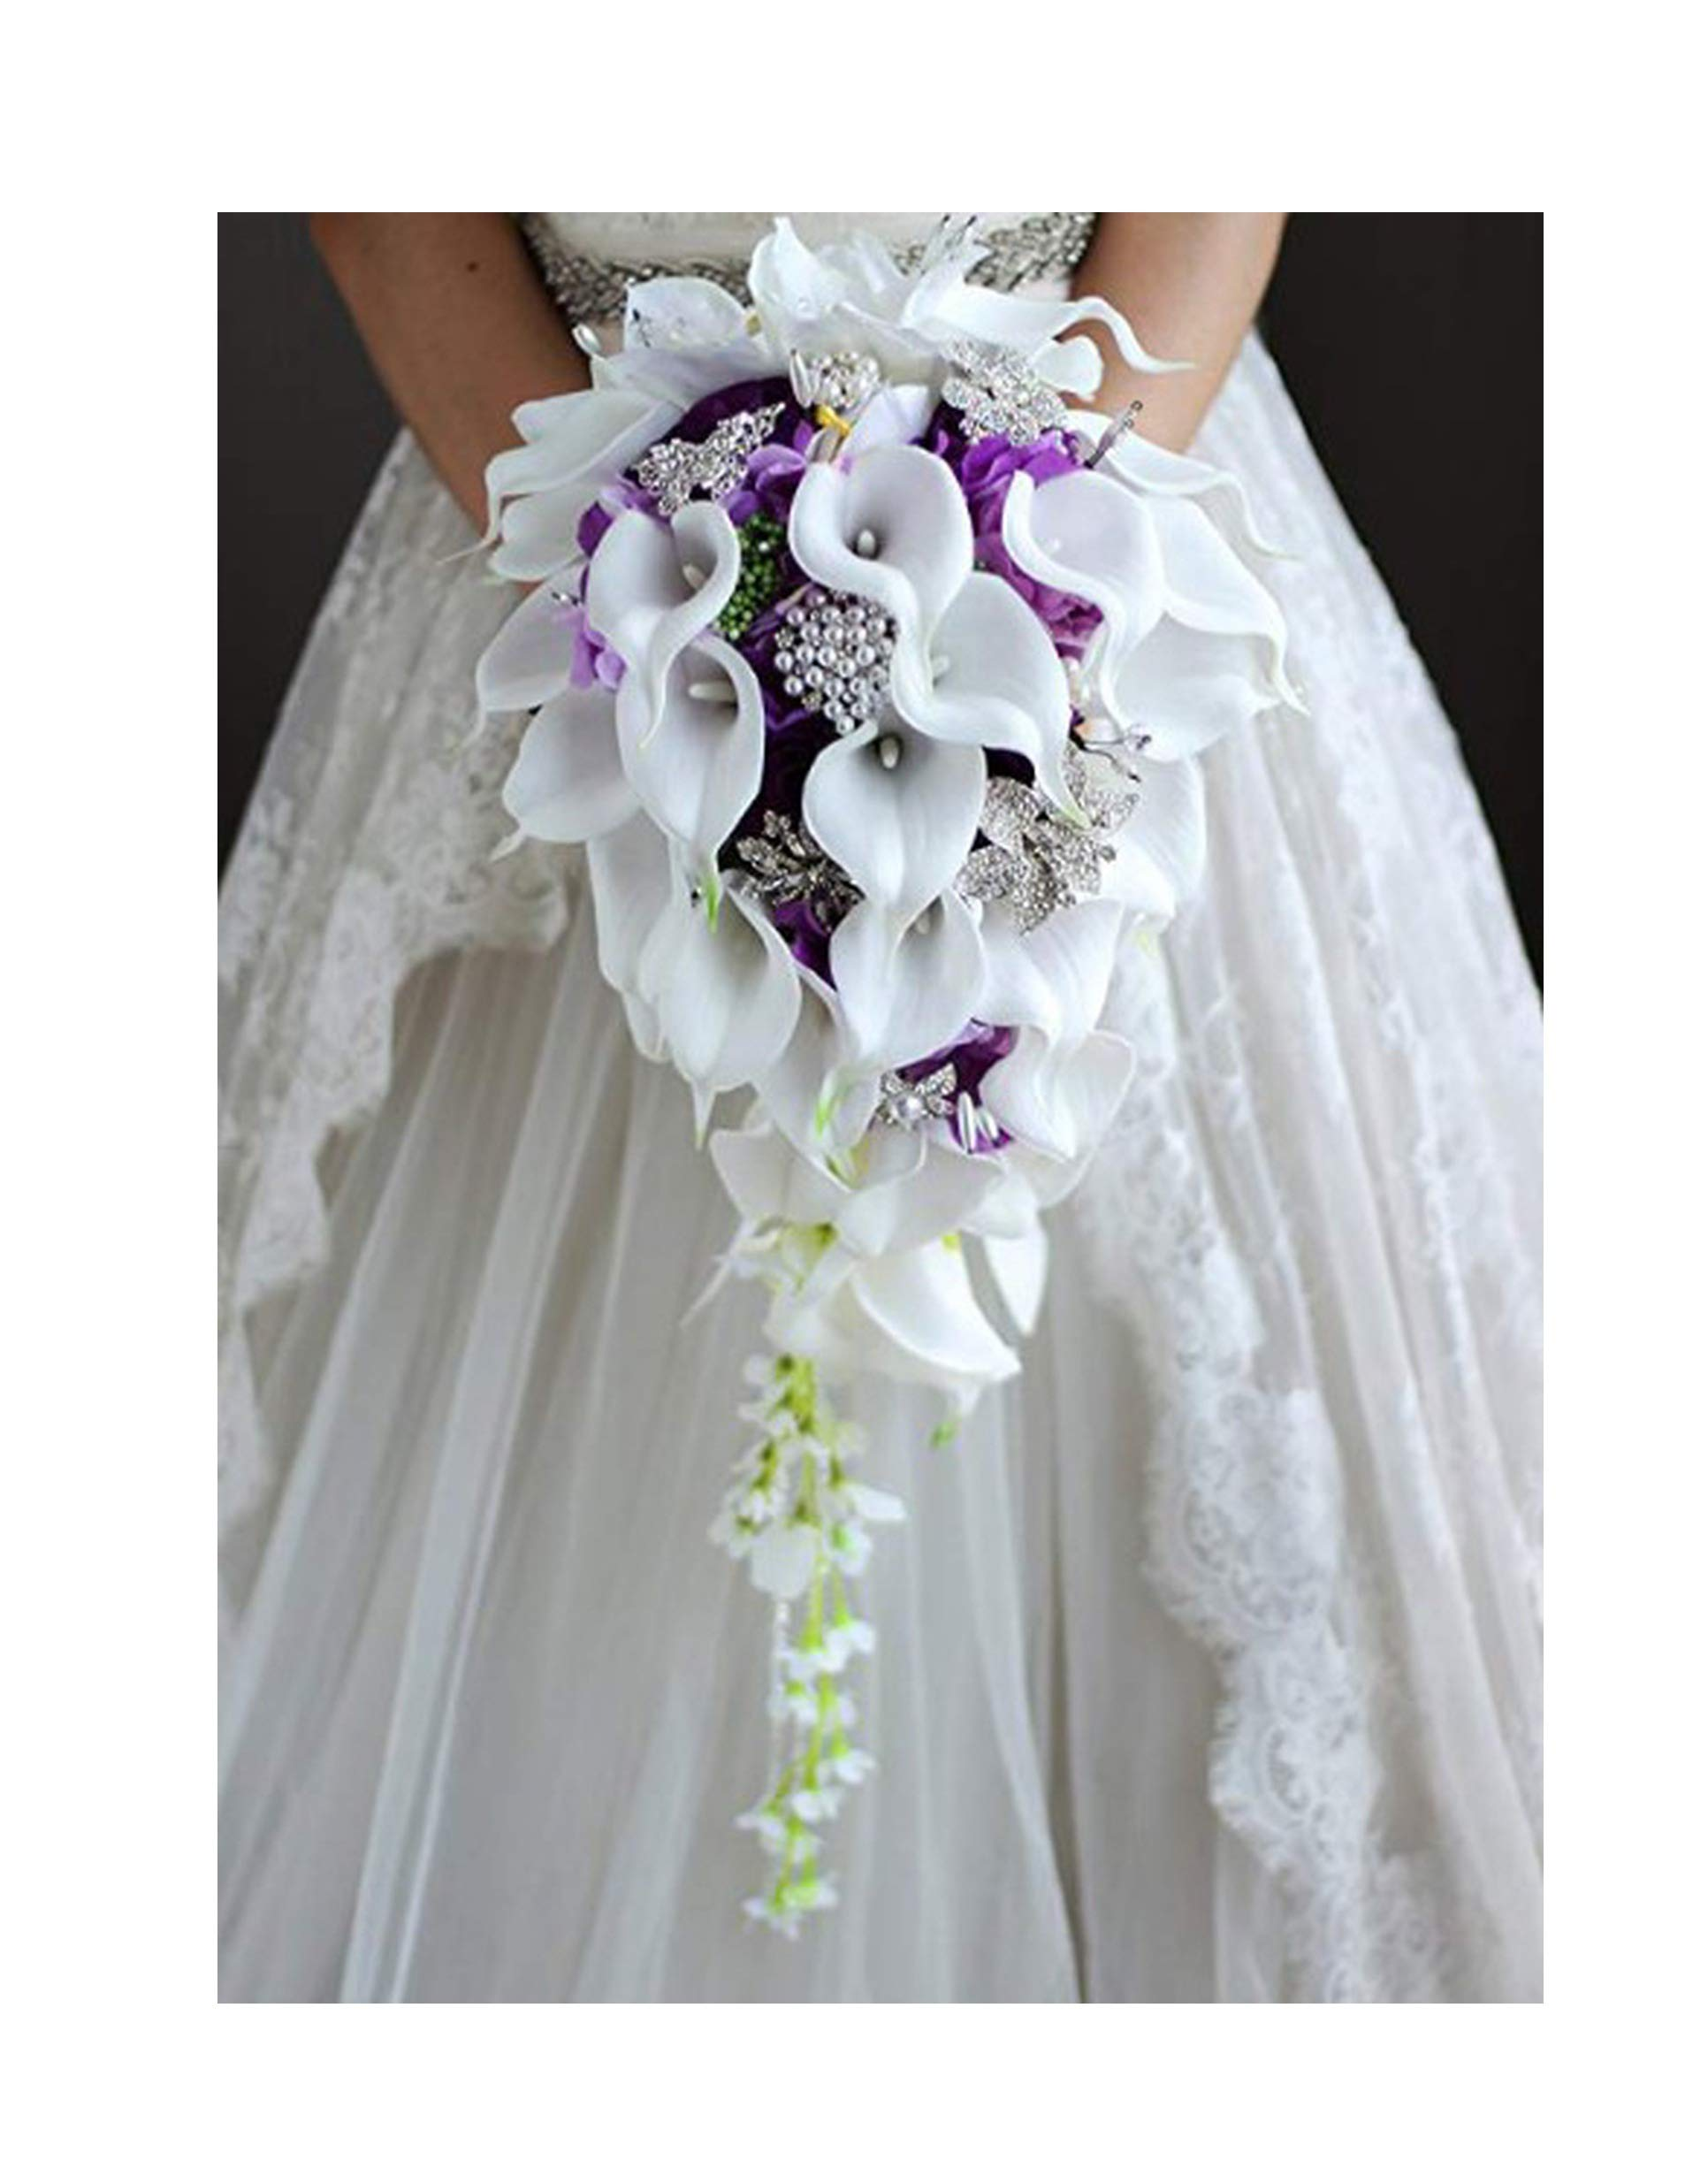 Waterfall Red Wedding Flowers Bridal Bouquets Artificial Pearls Crystal Wedding Bouquets Bouquet De Mariage Rose,Purple by Beenle IceyBridal bouquet